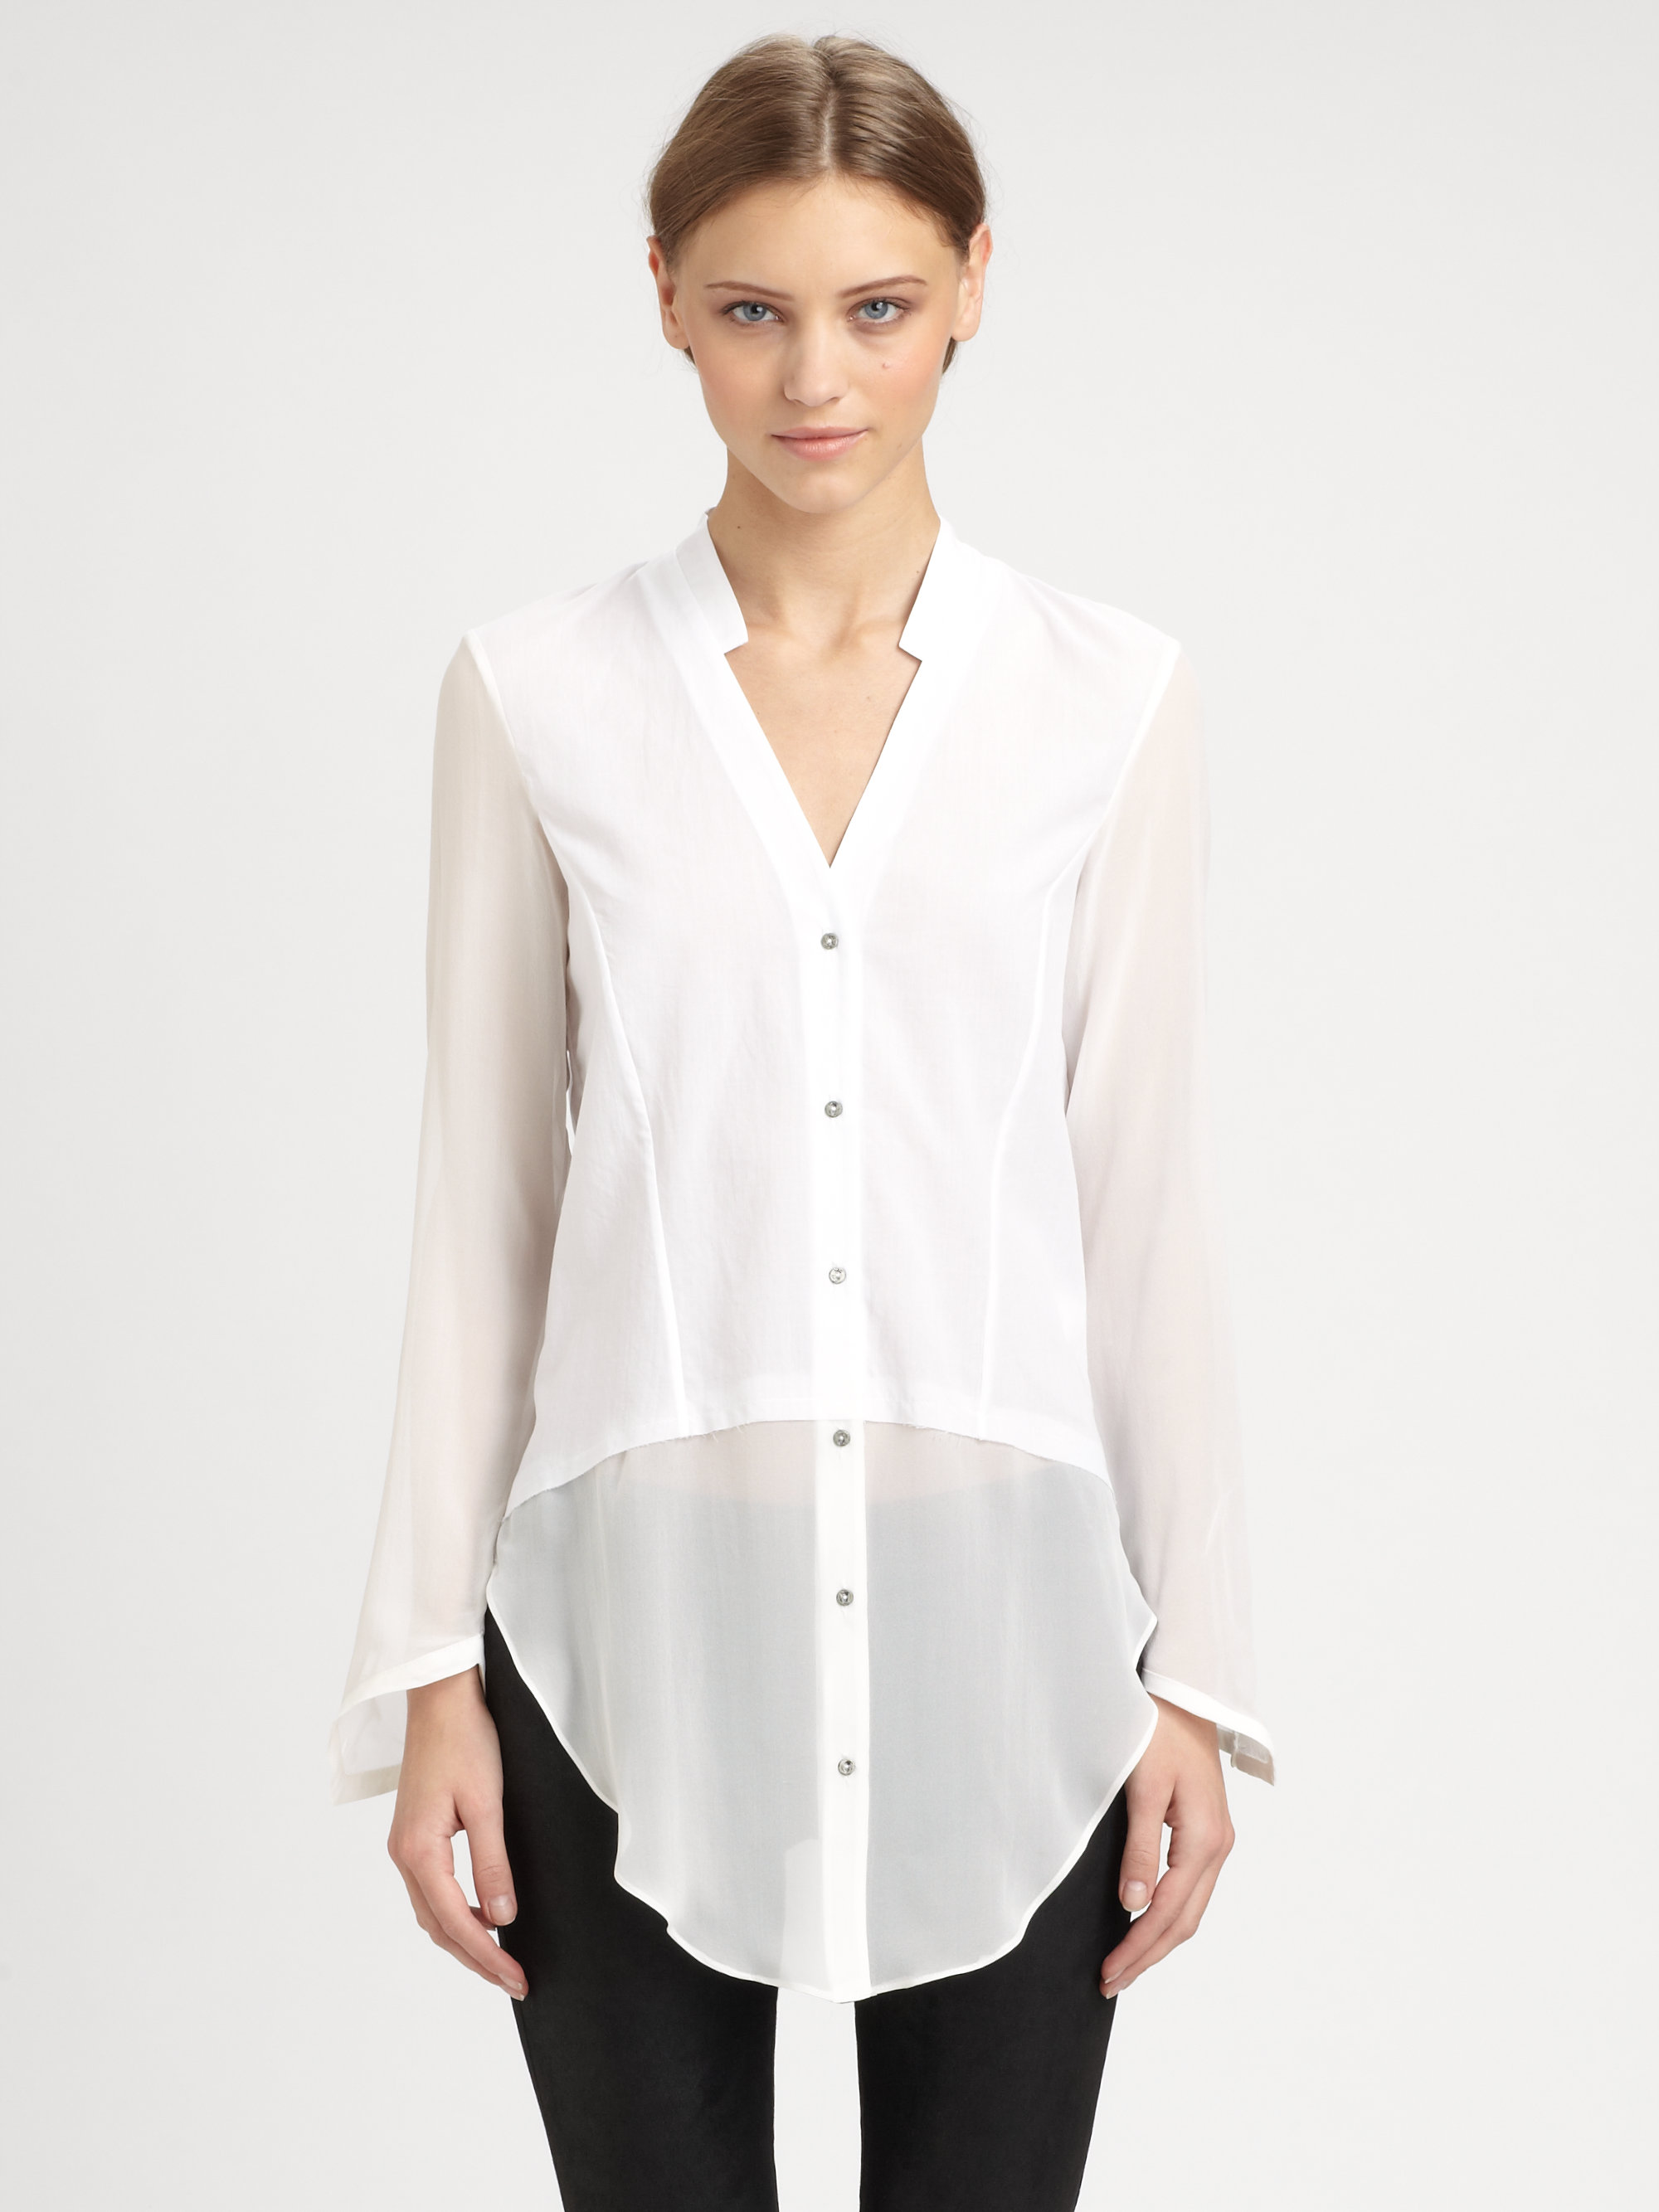 Lyst - Helmut lang Element Sheer Hem Shirt in White